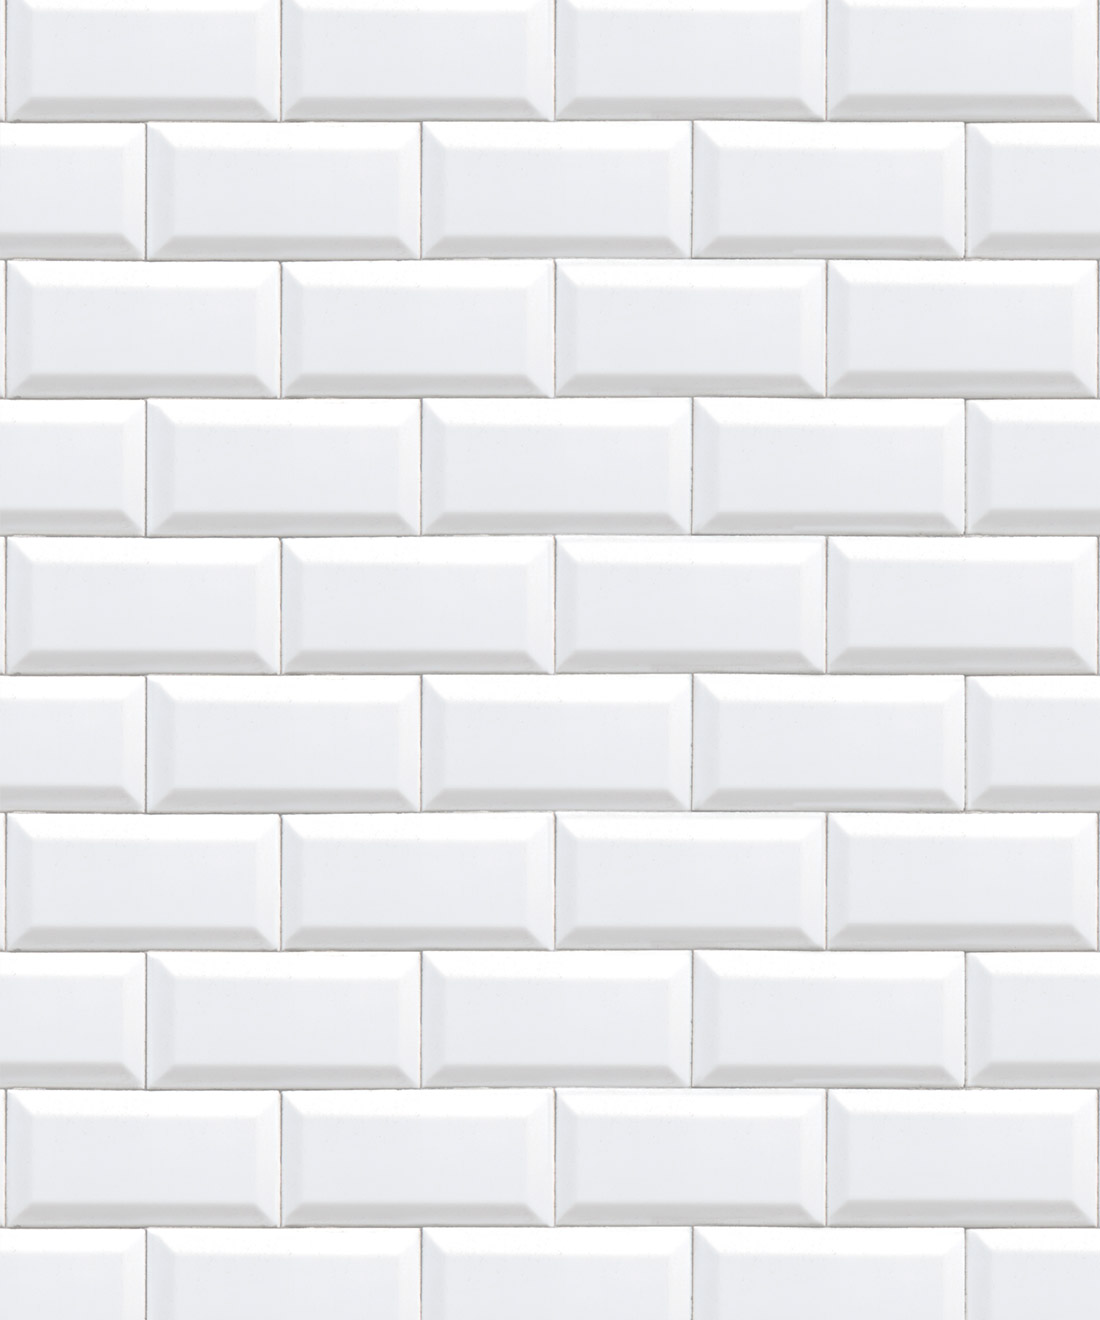 White Subway Tiles Wallpaper